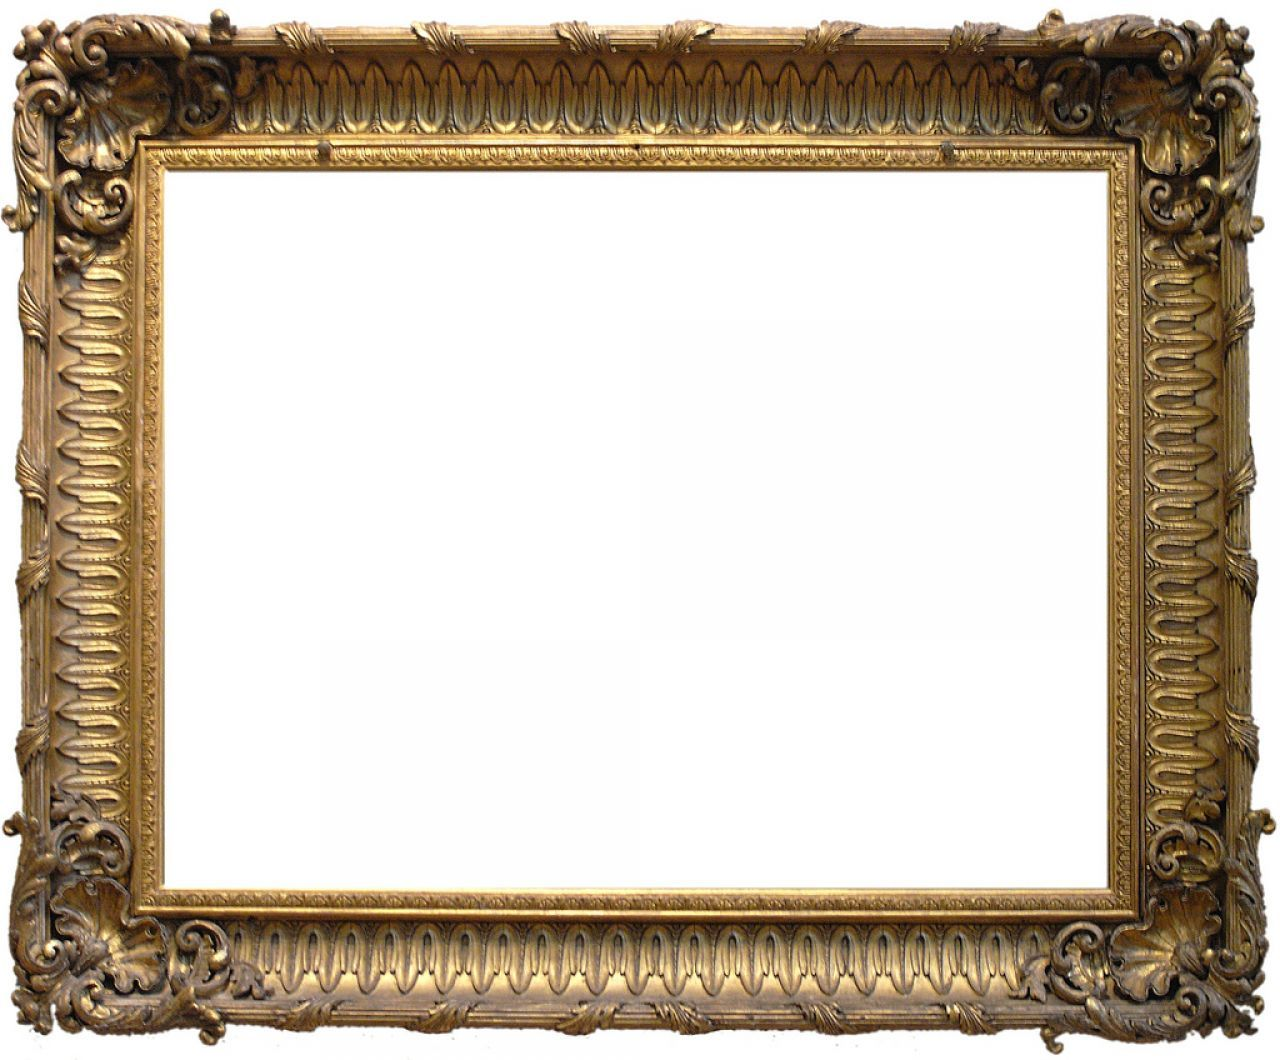 Pin by Mark Kobelka on picture frames | Victorian picture ...